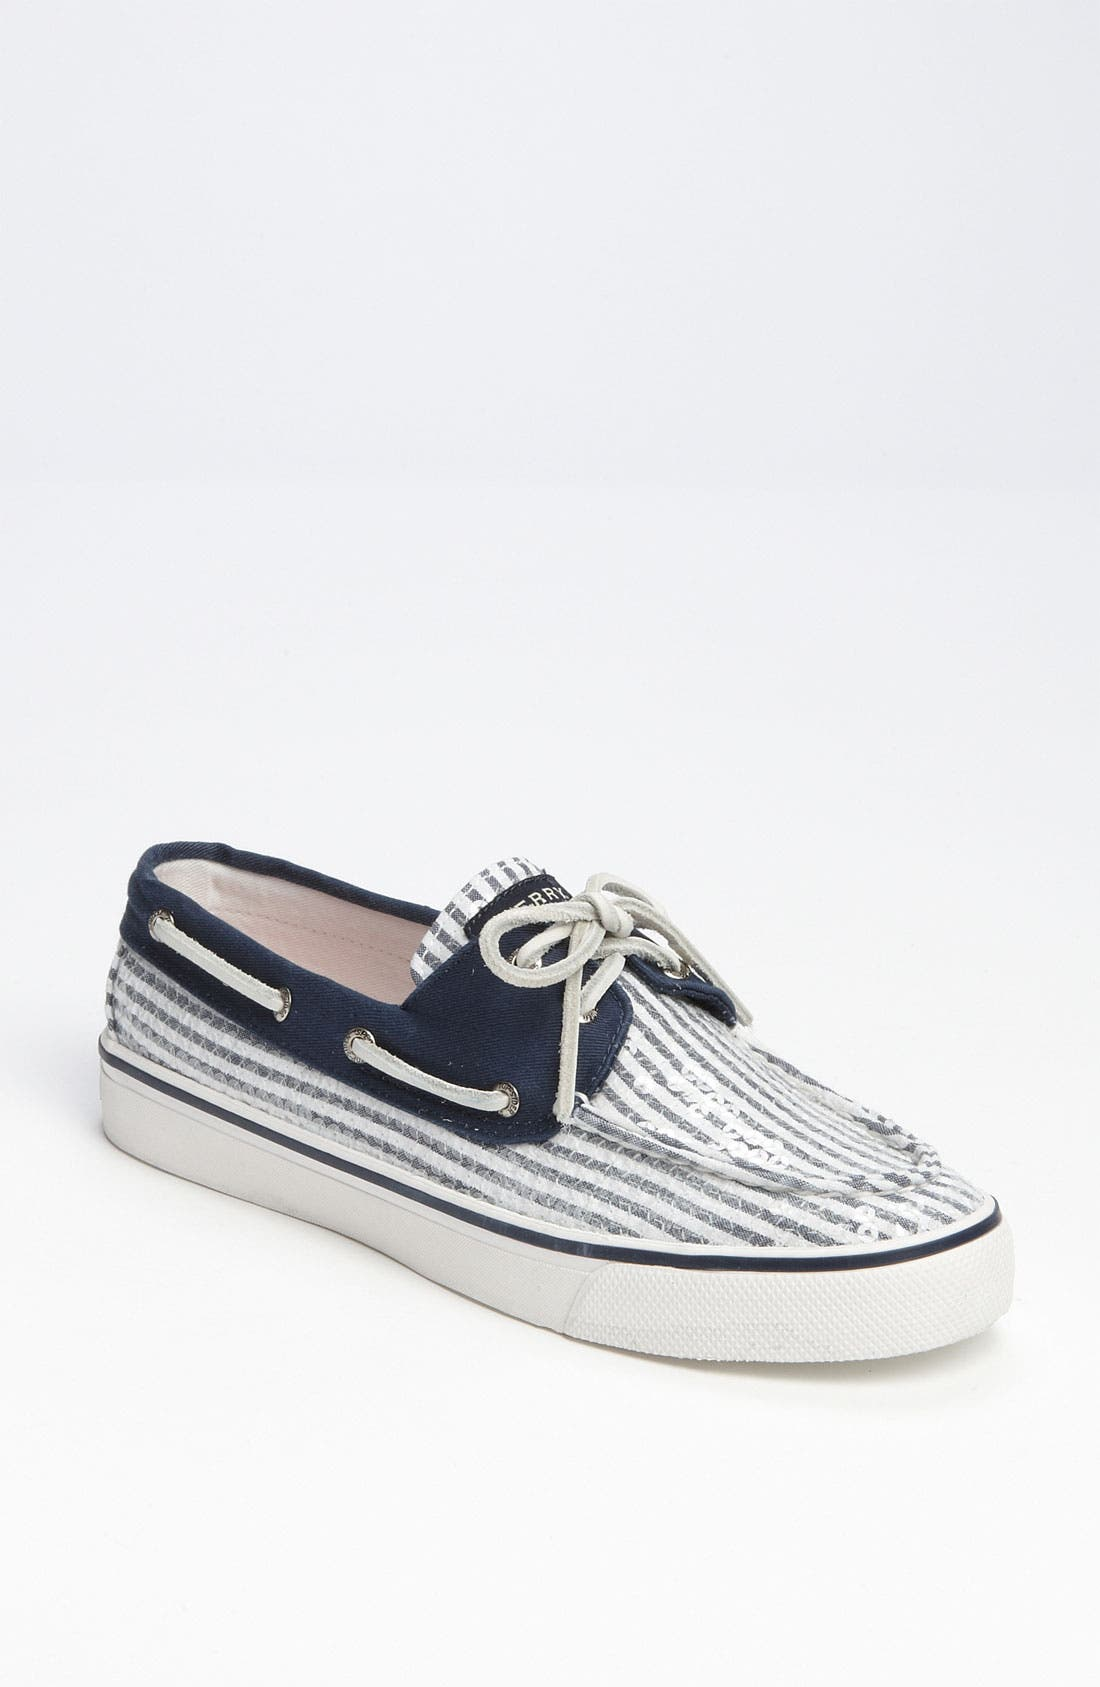 Main Image - Sperry 'Bahama' Sneaker (Women)